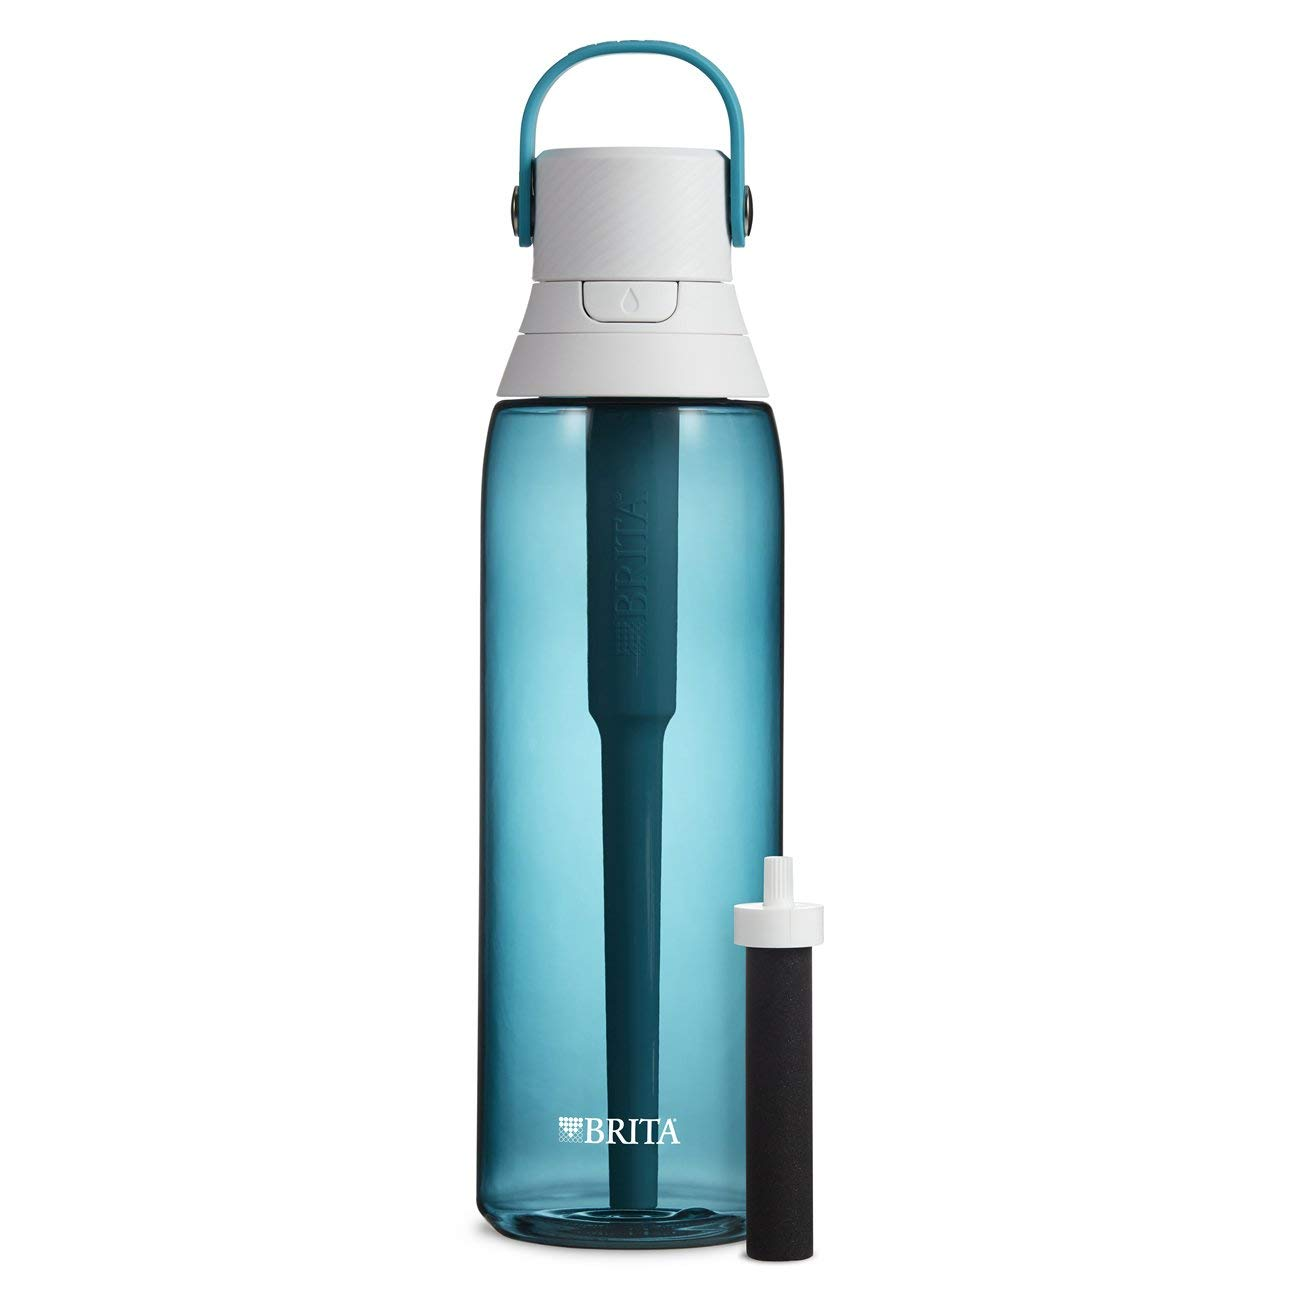 Brita 26 Ounce Premium Filtering Water Bottle with Filter BPA Free - Sea Glass